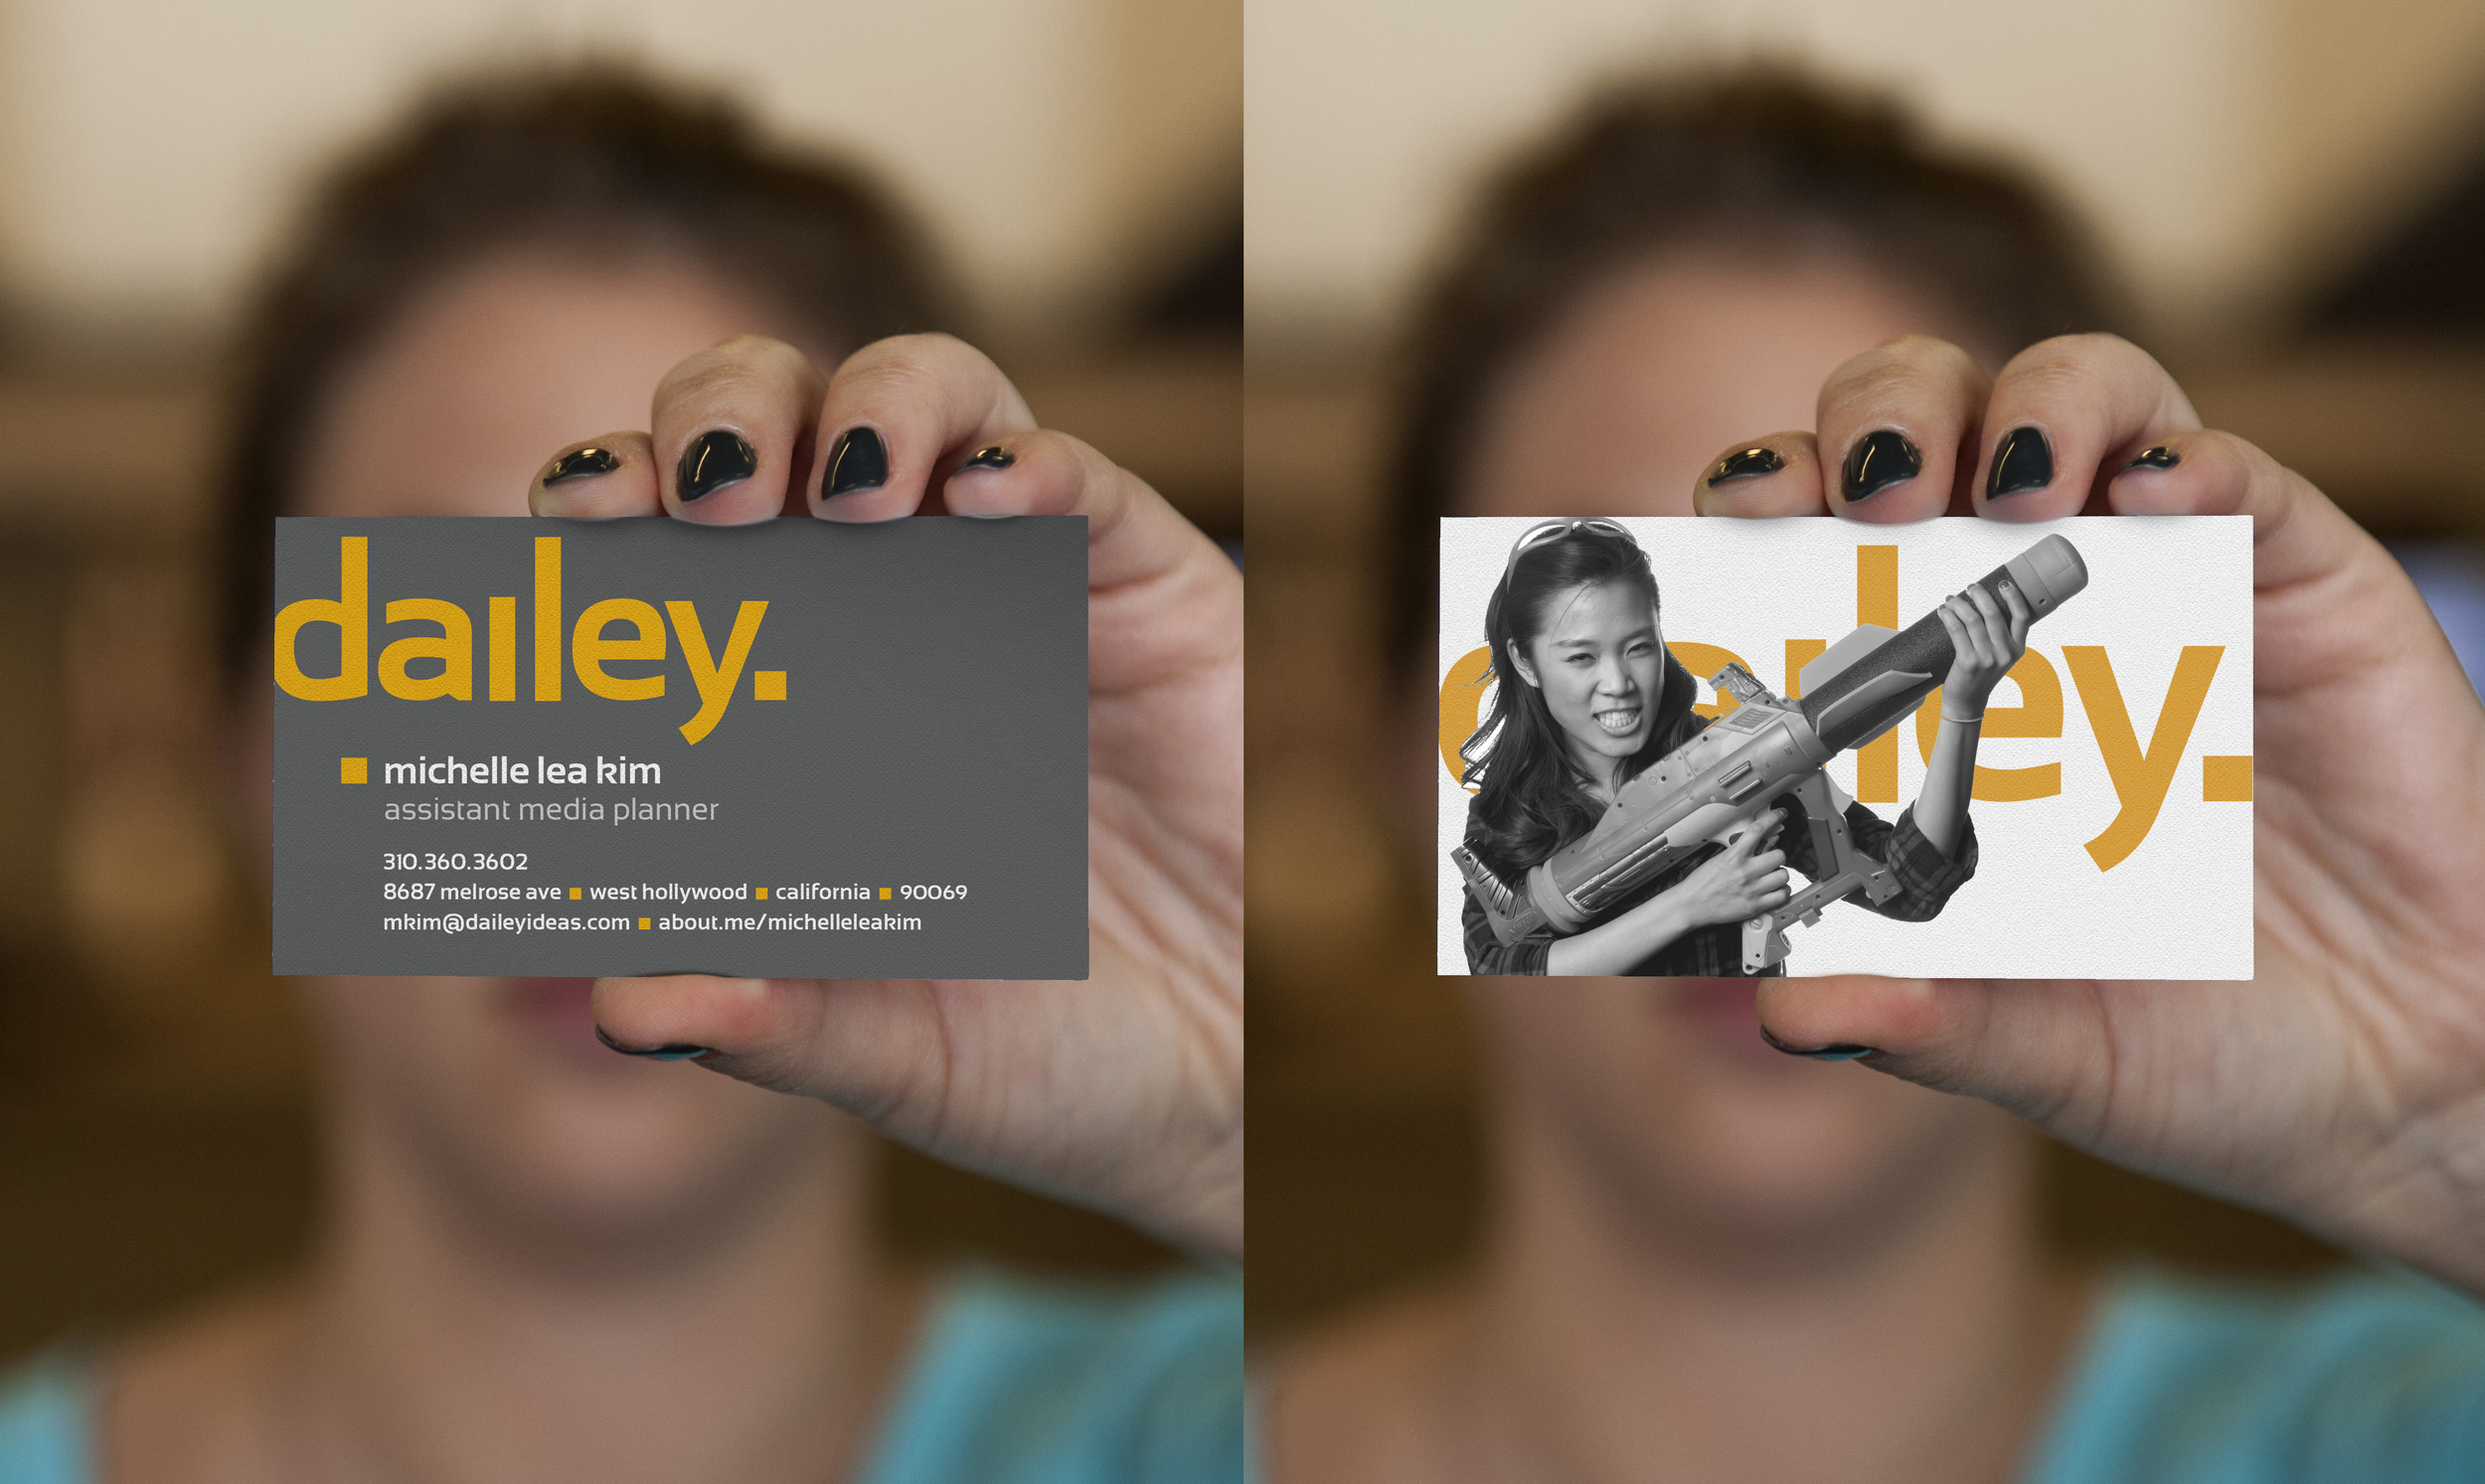 Two sided business cards that feature a fun biographical image on the back.